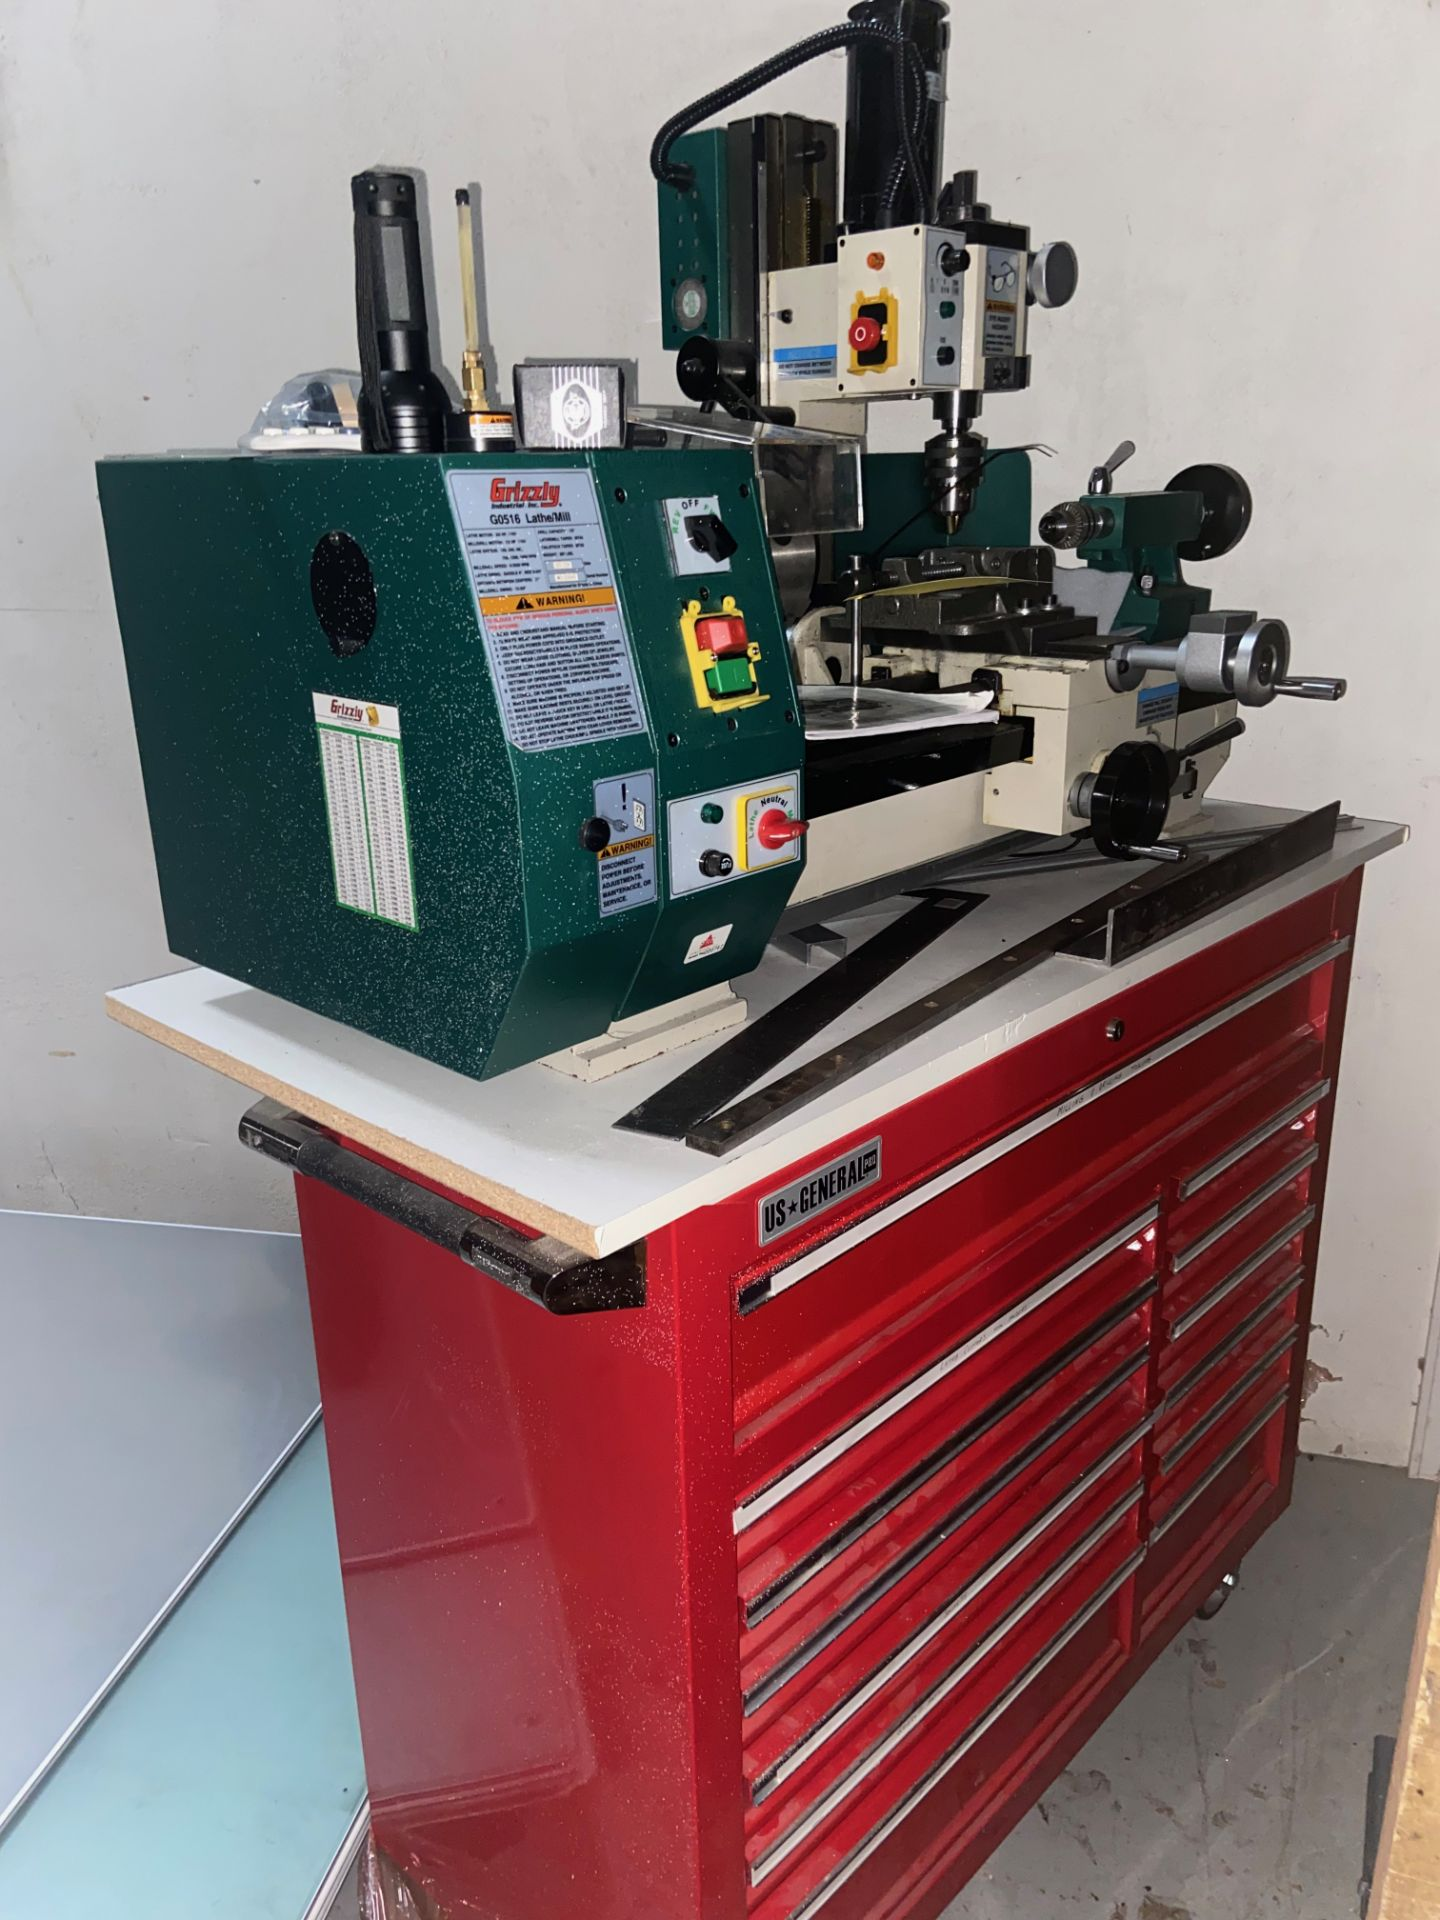 Grizzly Industrial Lathe/Mill, Model# G0516, Serial# MO120045, Lathe Motor 3/4 hp, 110V, 150-2400 - Image 2 of 12